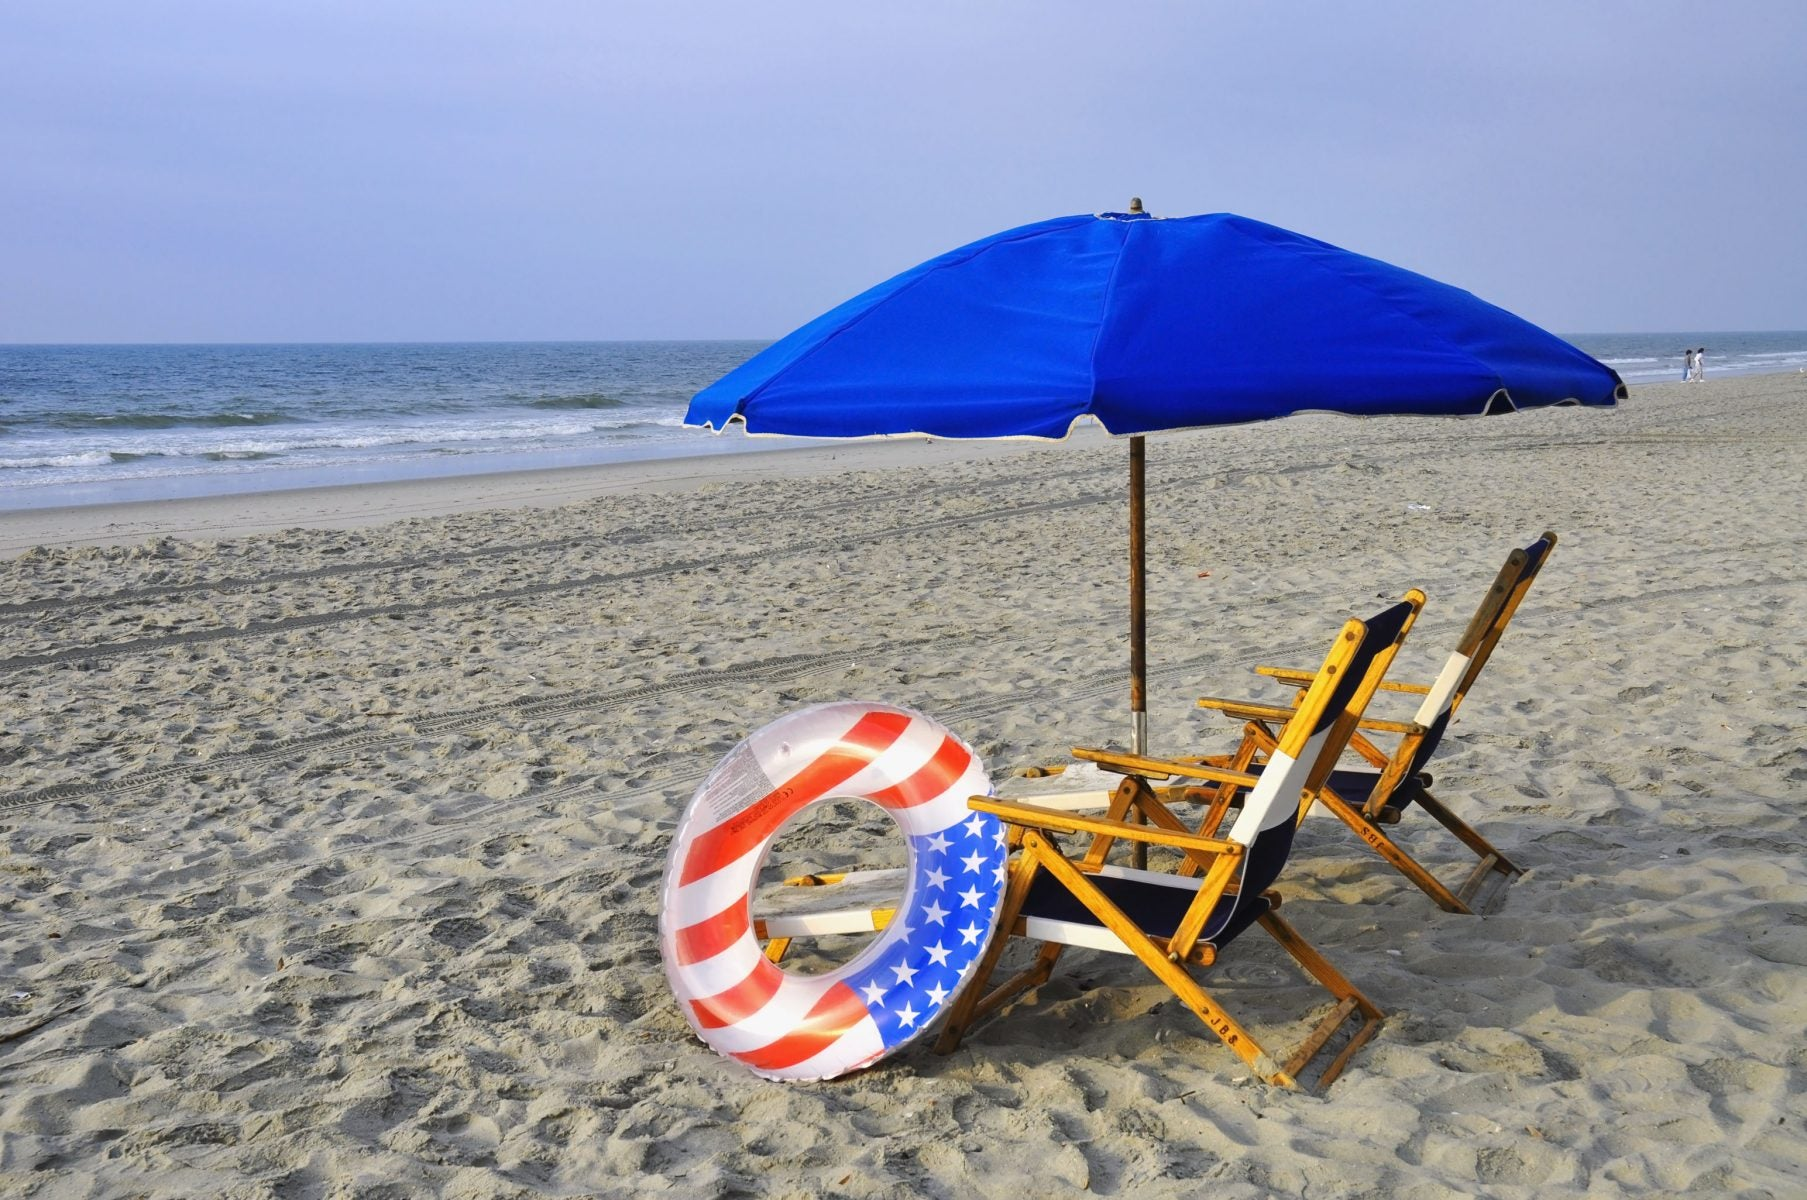 Our Top Tips for 4th of July Travel